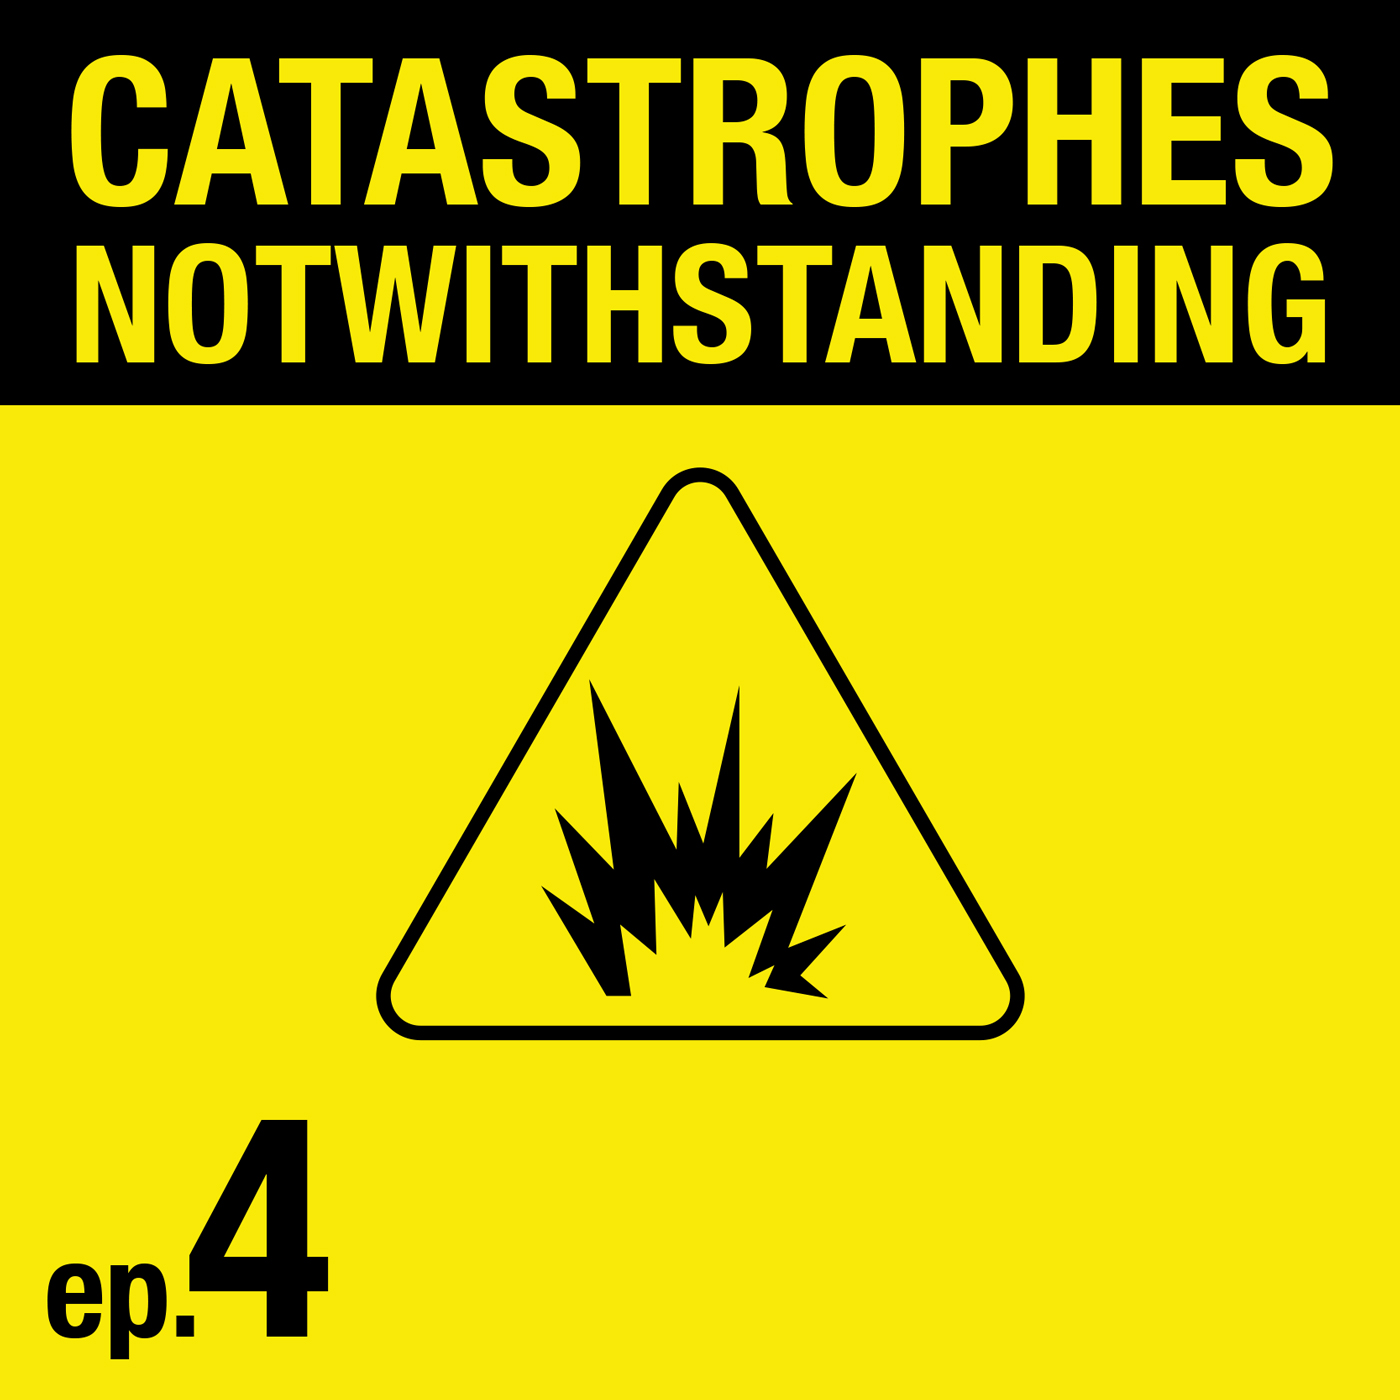 Cover Image of Catastrophes Notwithstanding Episode 4